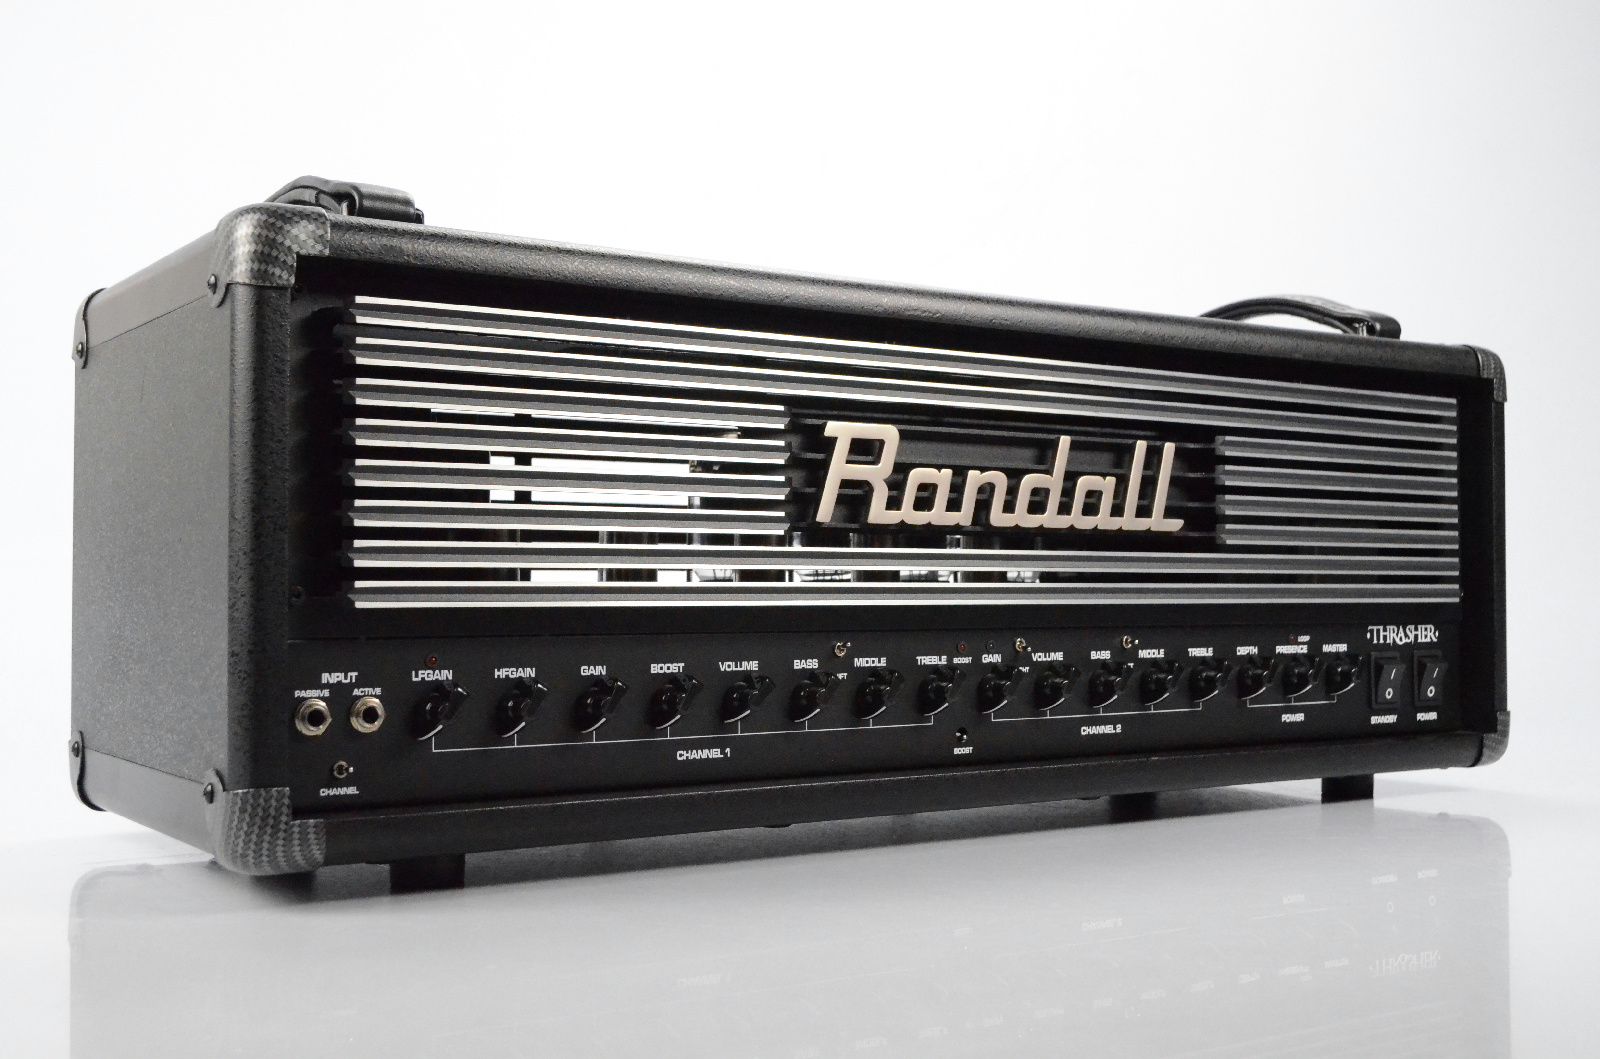 Details about Randall Thrasher Guitar Tube Amplifier Amp Head Owned by  George Lynch #32451